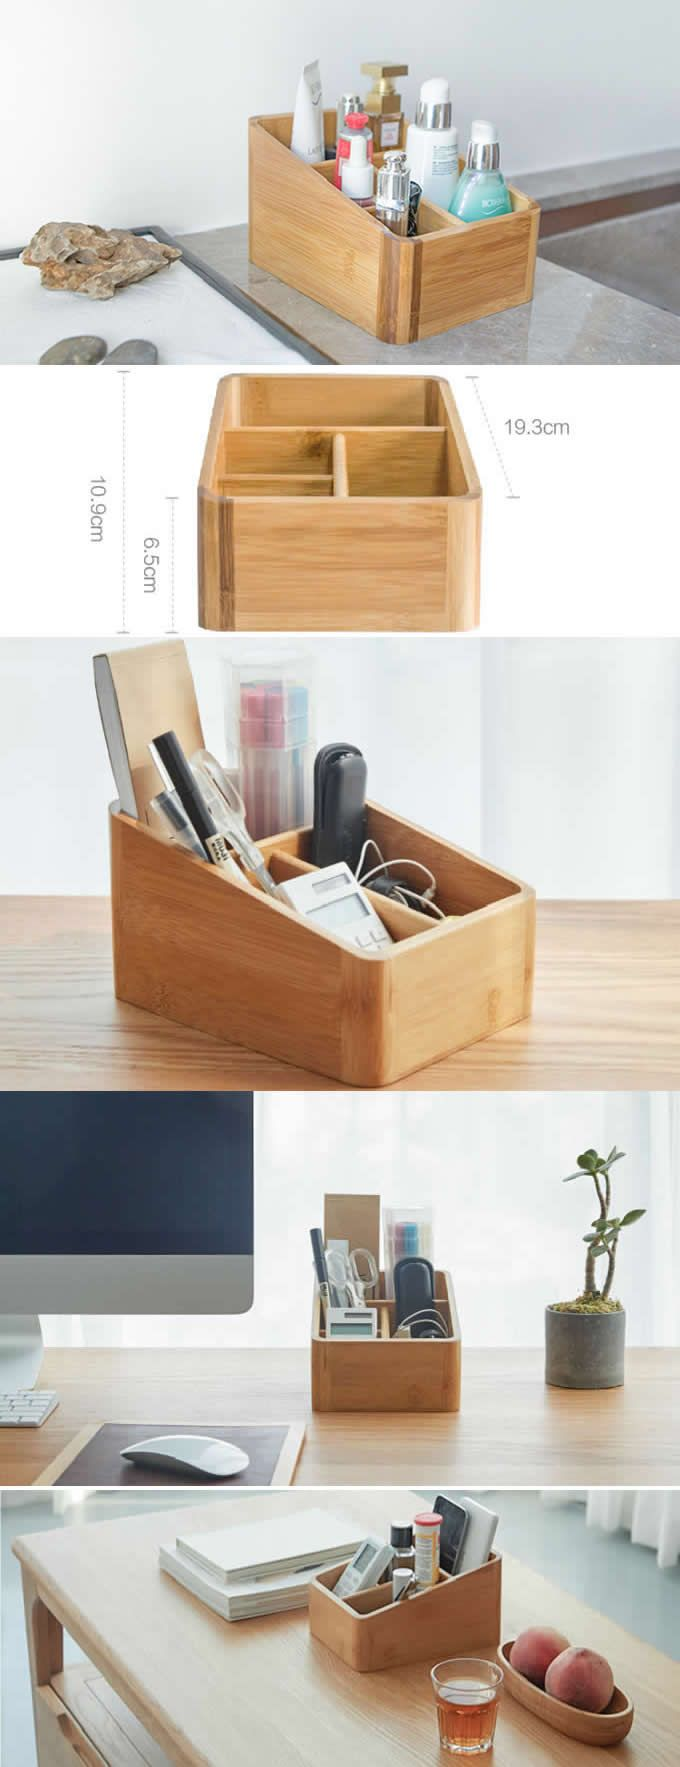 DIY Woodworking Ideas Bamboo Wooden Office Desk Organizer Pen Pencil Holder Stand Smart Phone Mobile Phone iPhone Dock Stand Holder Remote Control Holder Organizer Memo Holder Makeup Organizer Ideas - Phone Stand / Pencil Holder / Business Card Holder